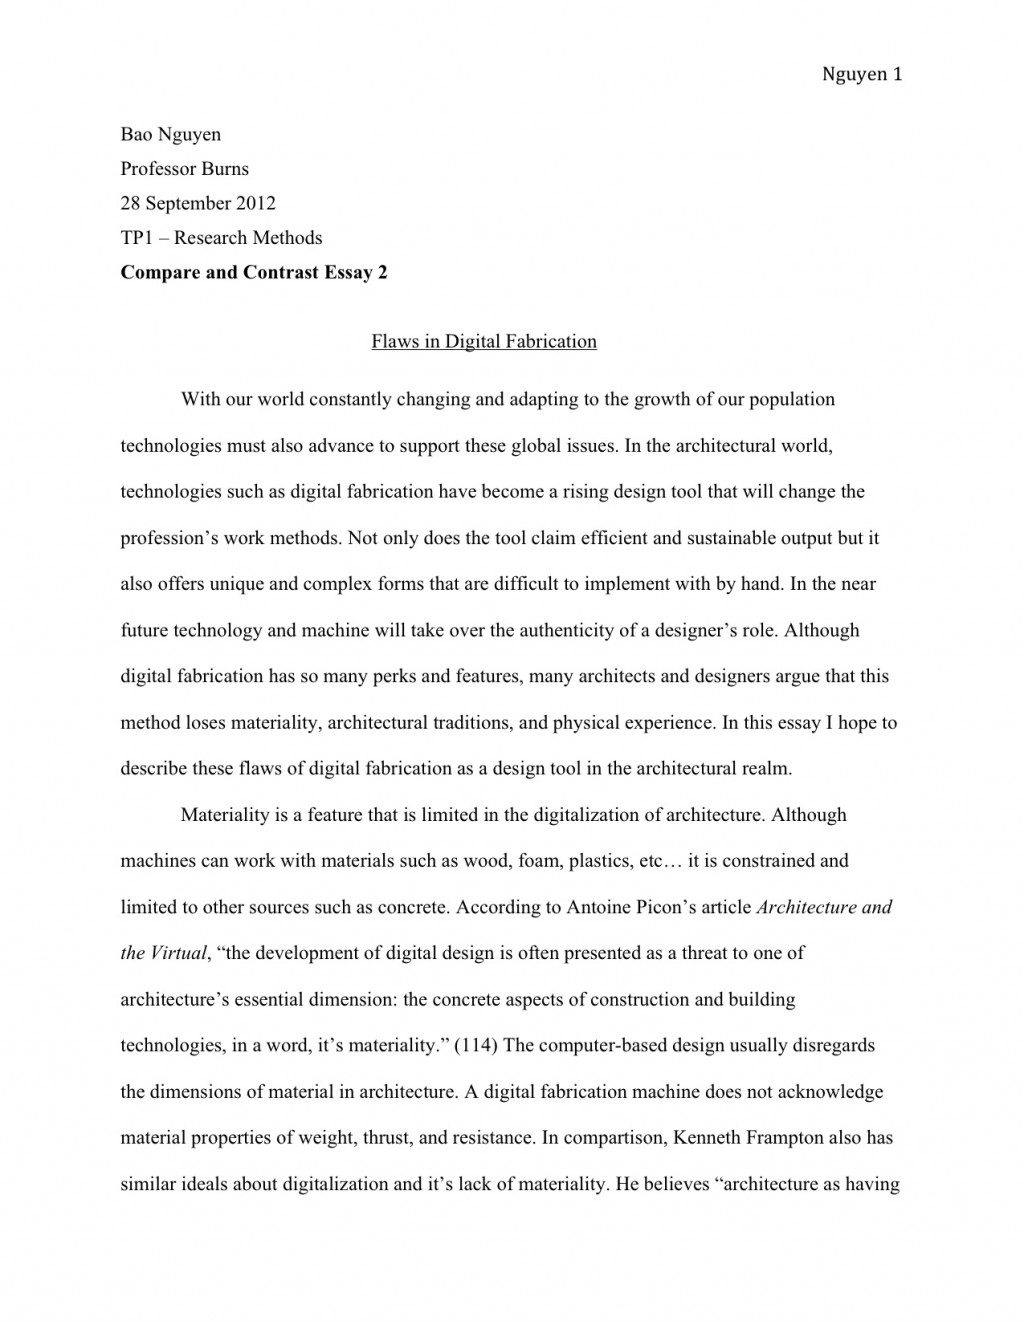 005 Essay Example With Thesis Tp1 3 Breathtaking Personal Narrative Statement And Topic Sentence Format Large